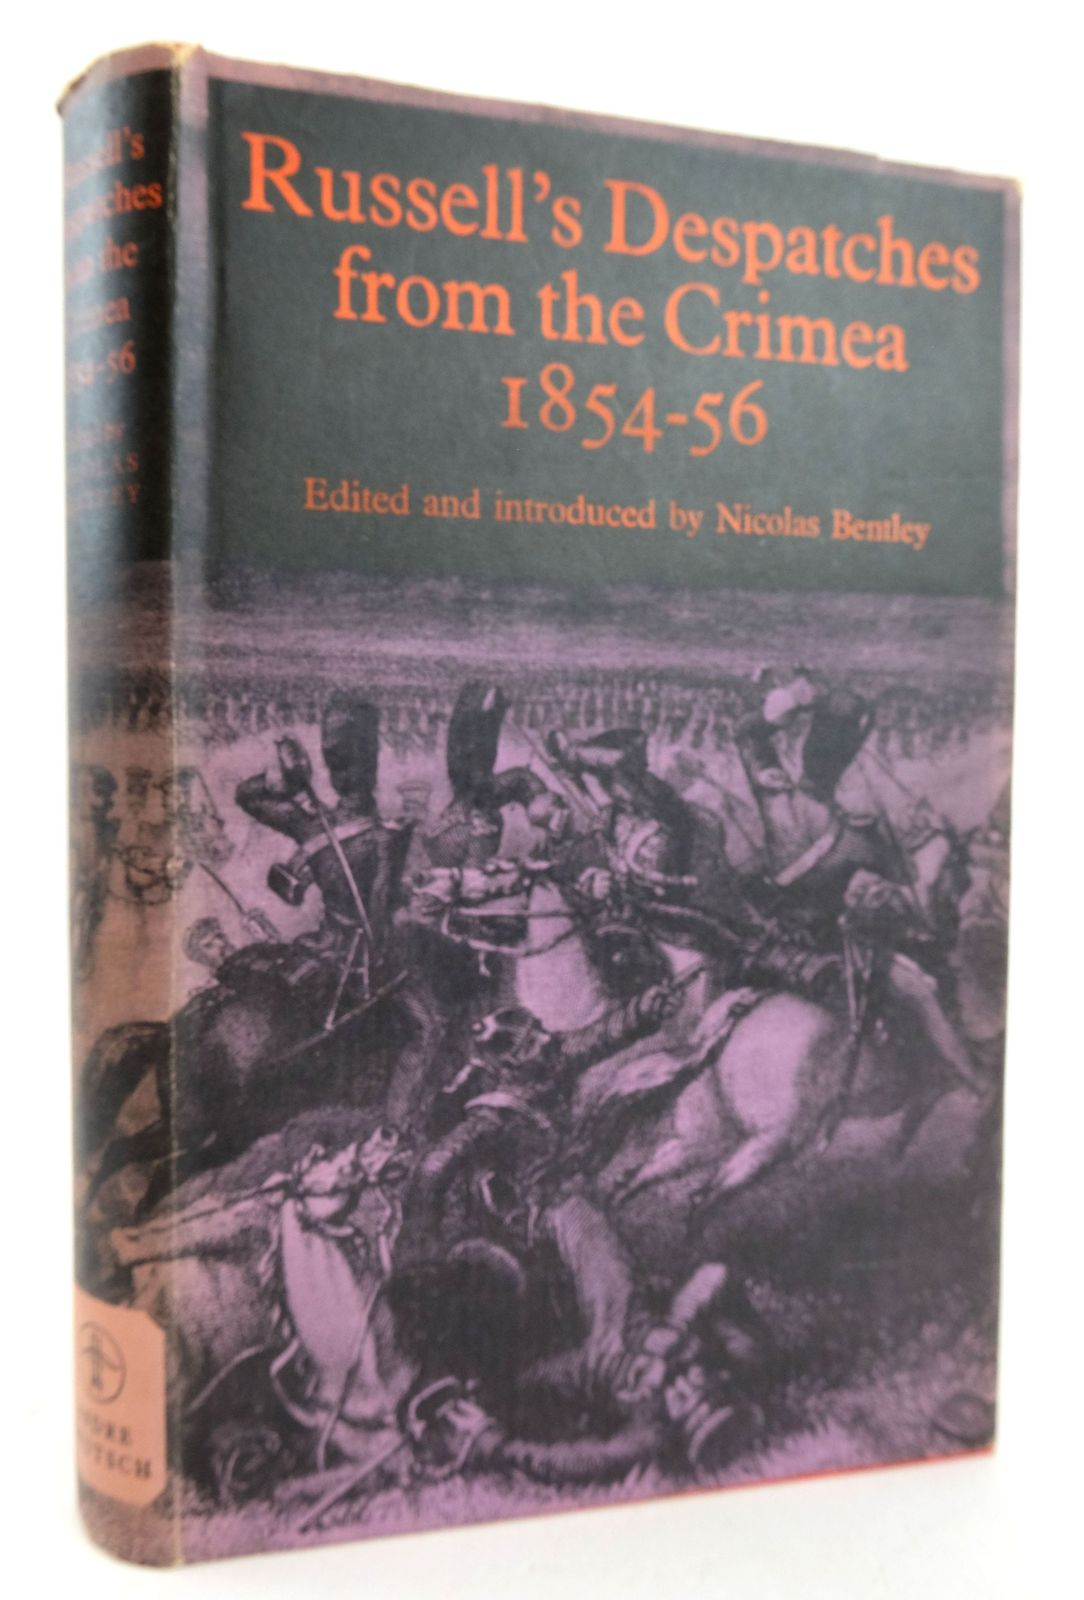 Photo of RUSSELL'S DESPATCHES FROM THE CRIMEA 1854-1856- Stock Number: 1819492